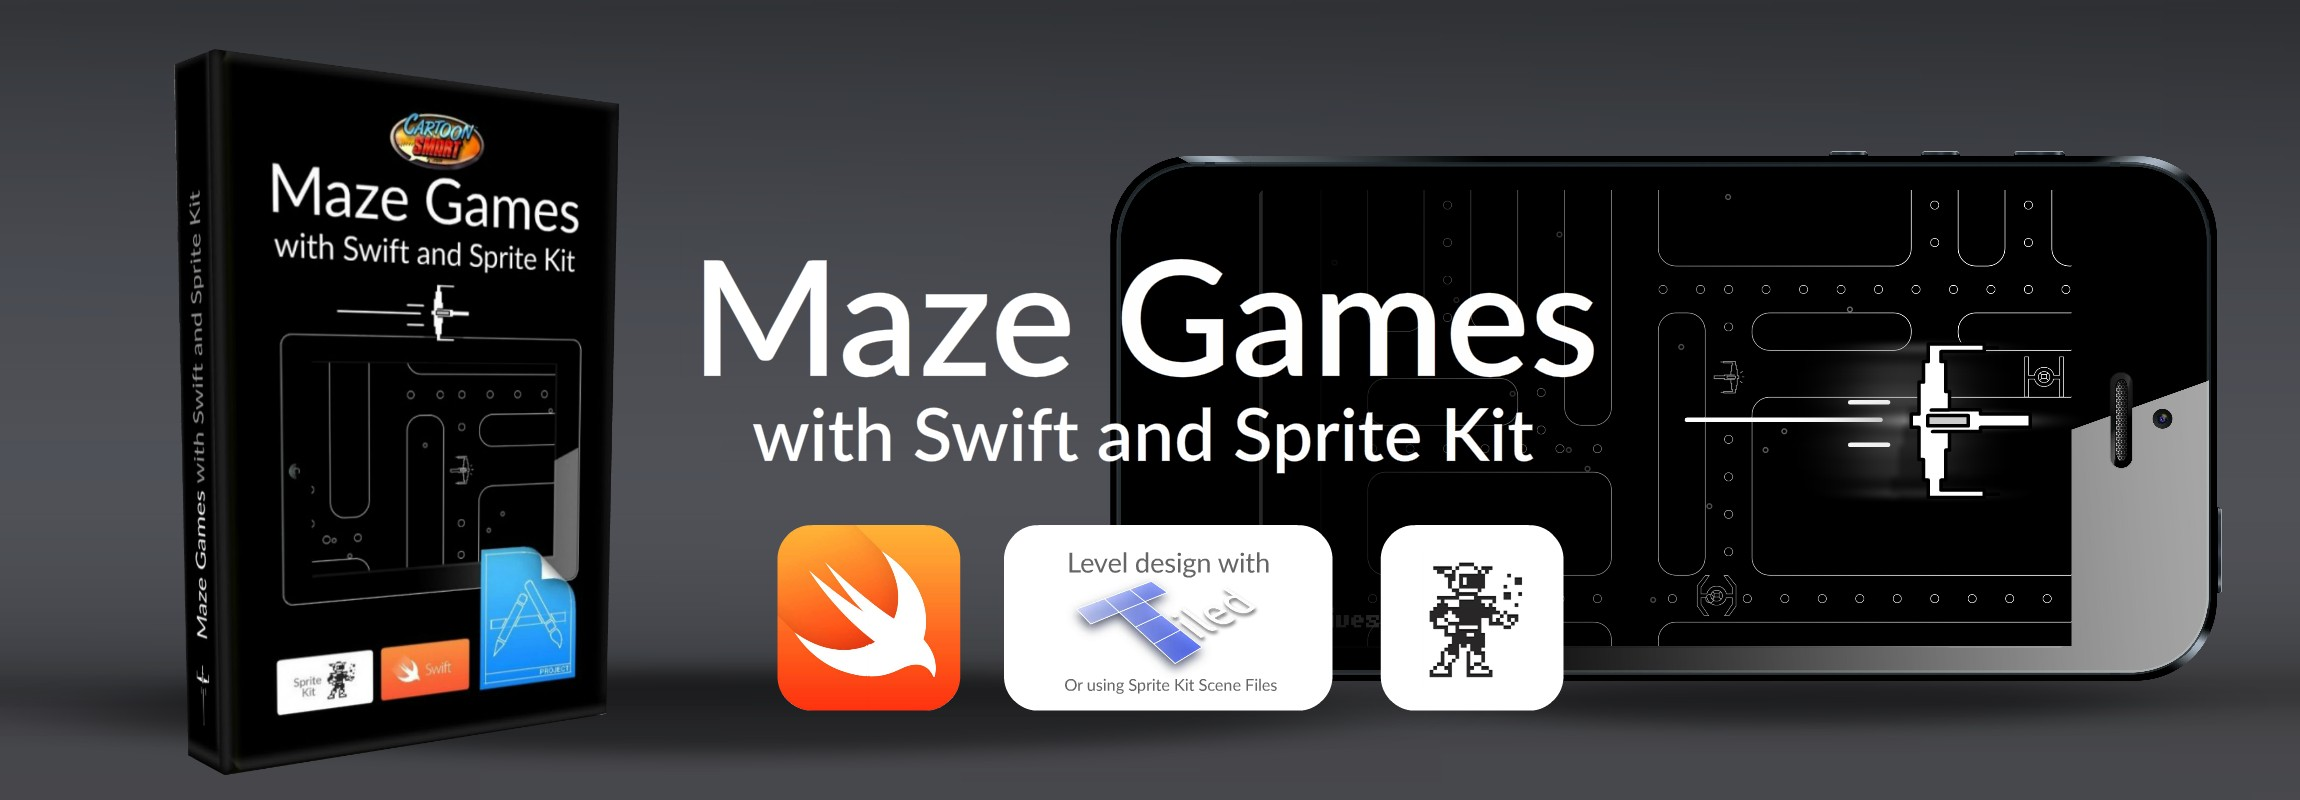 Click to view iOS Maze Games Tutorial with Swift and Sprite Kit!